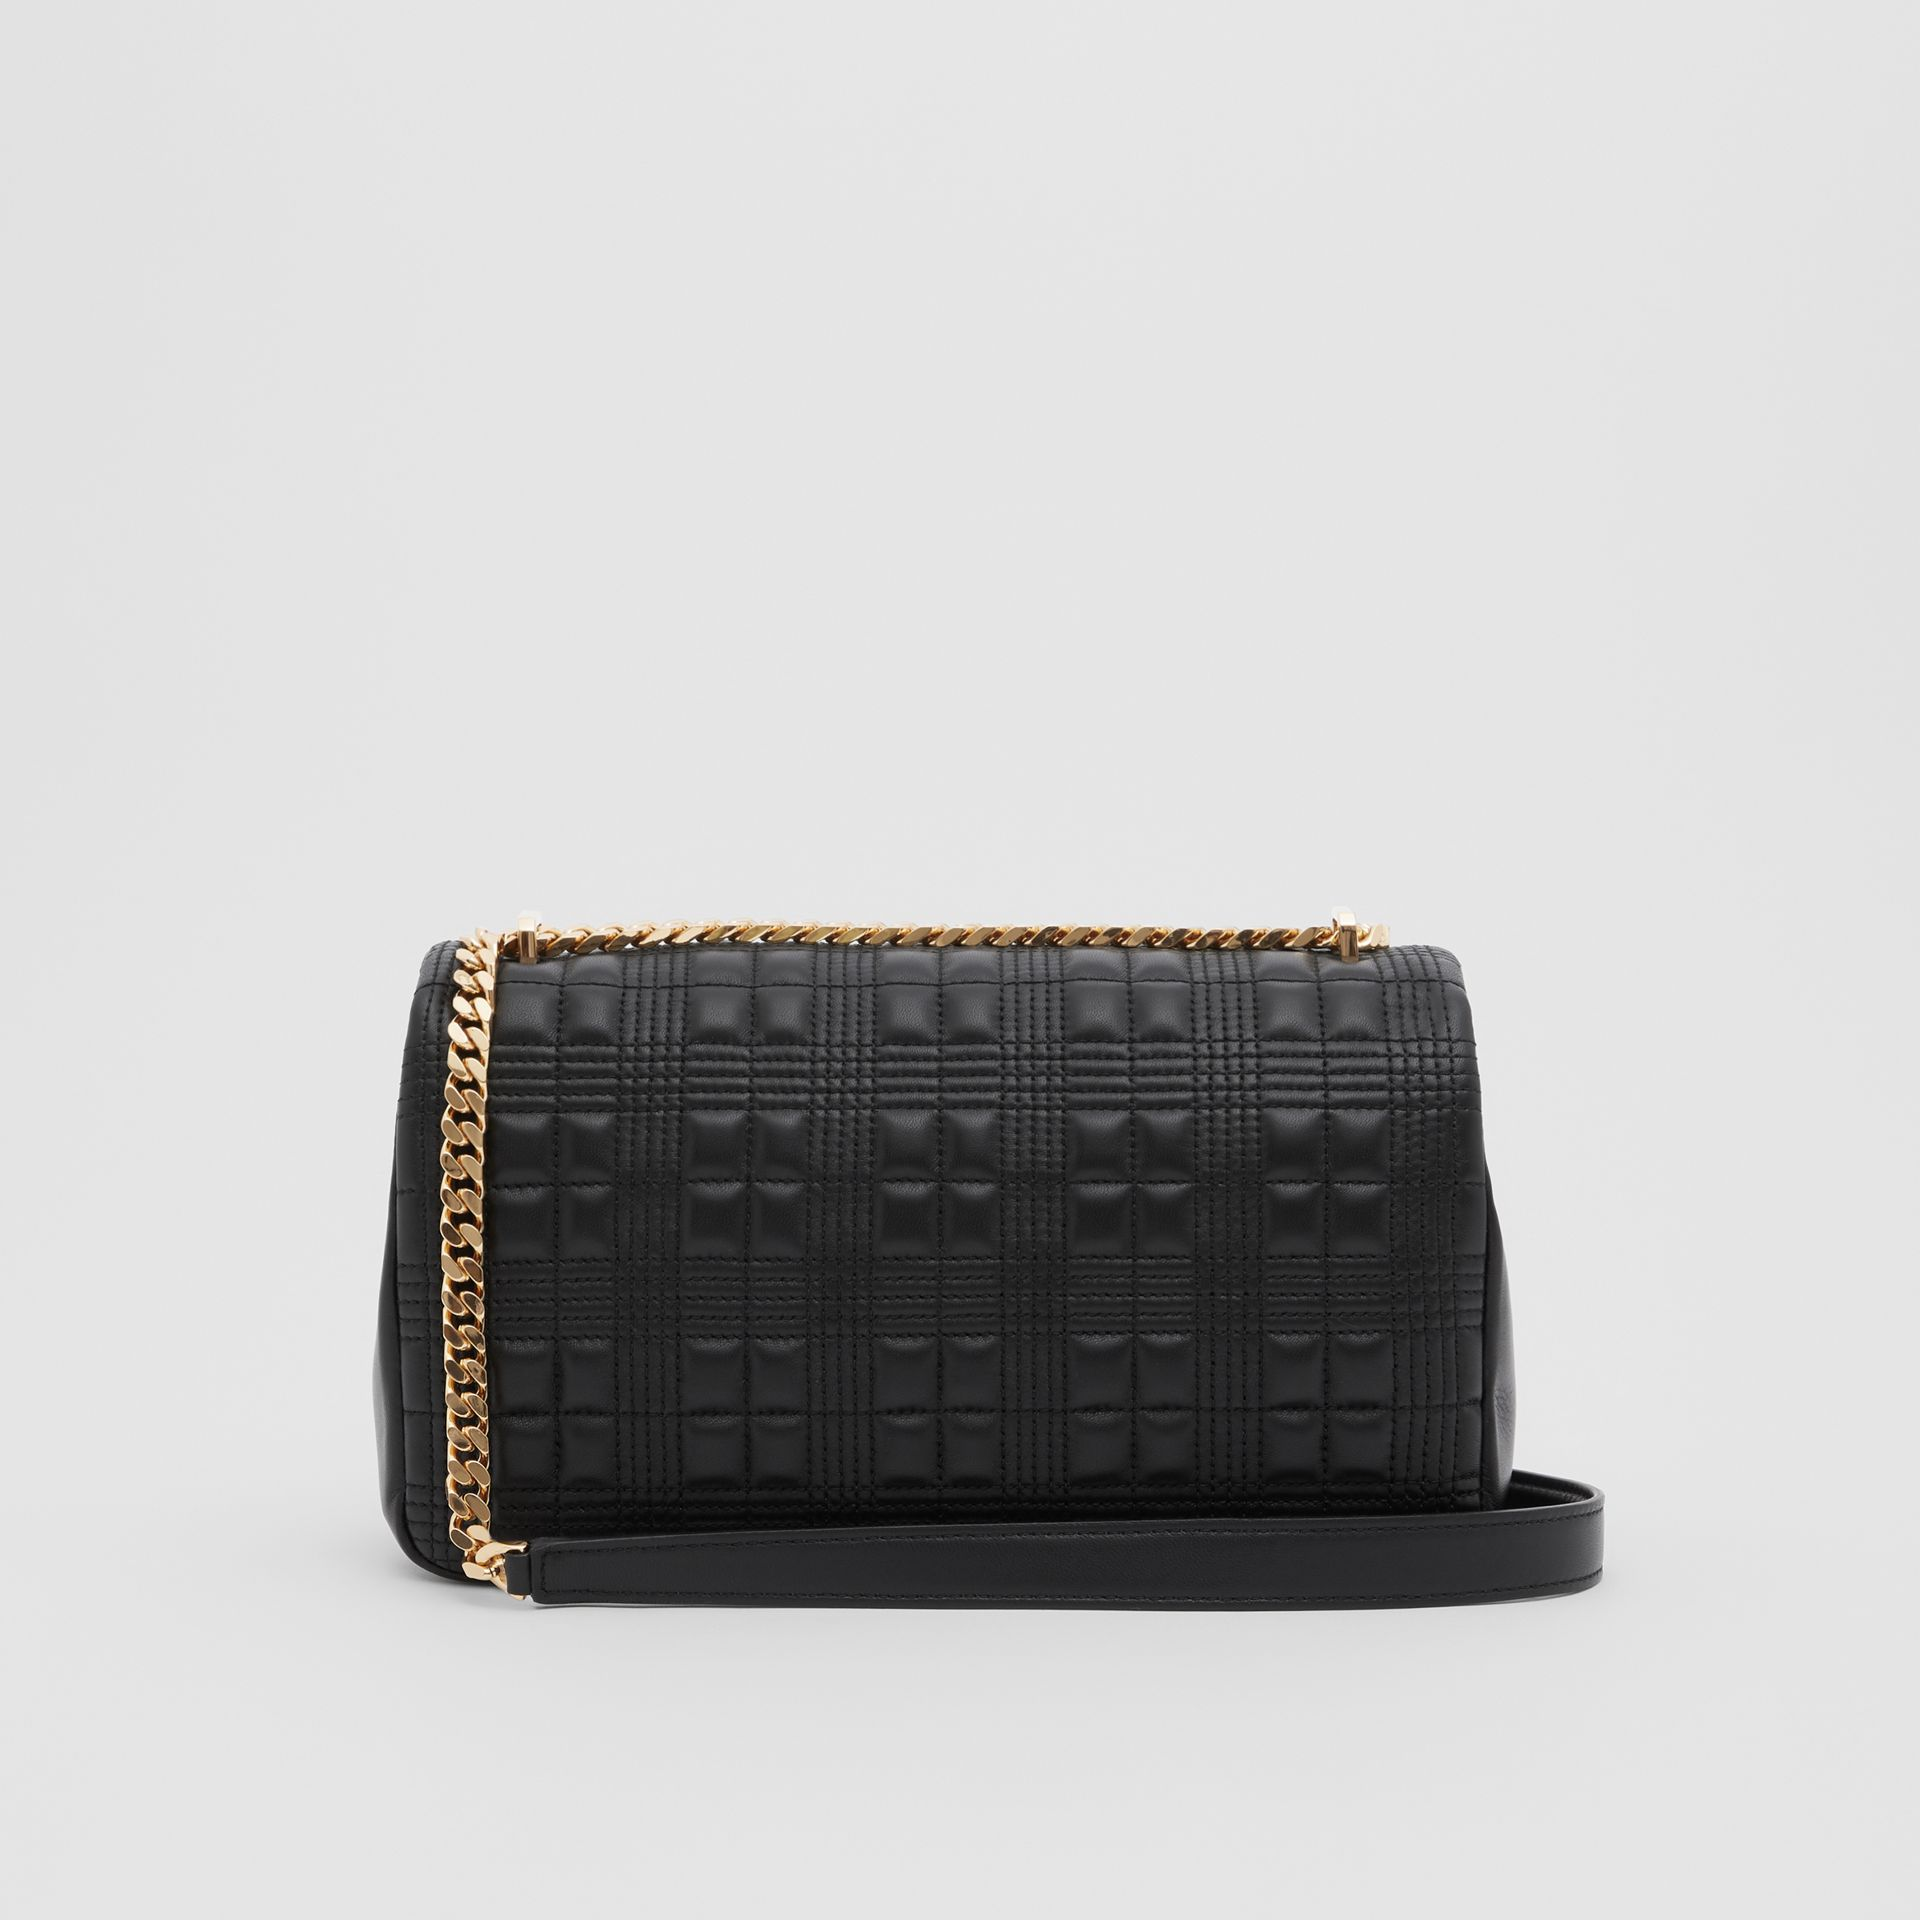 Medium Quilted Lambskin Lola Bag in Black - Women | Burberry - gallery image 7